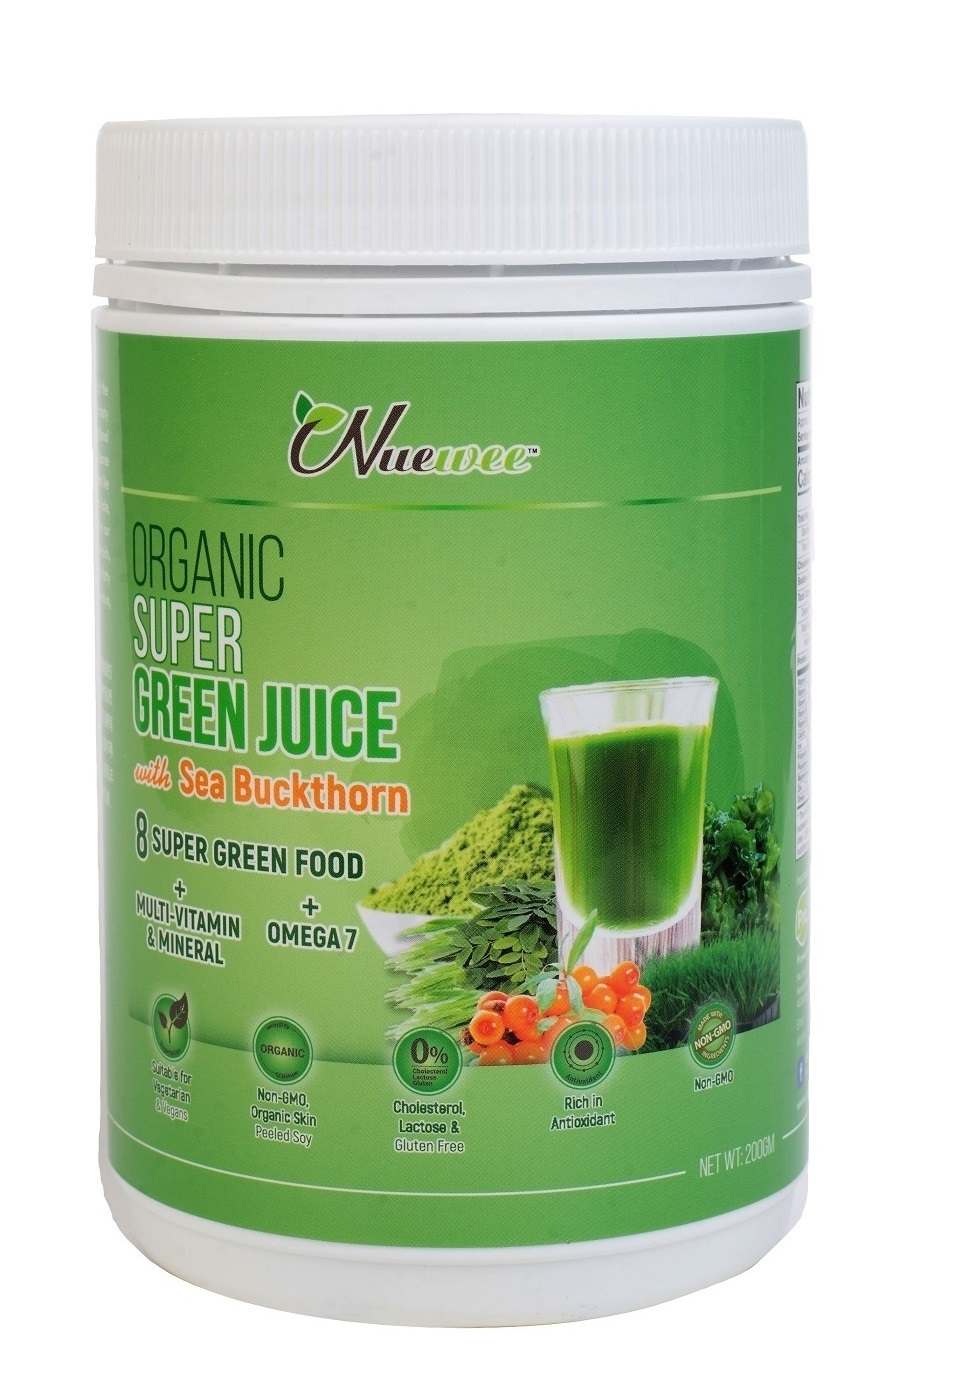 Nuewee-Organic-Super-Green Juice-with-sea-buckthorn-Front.jpg